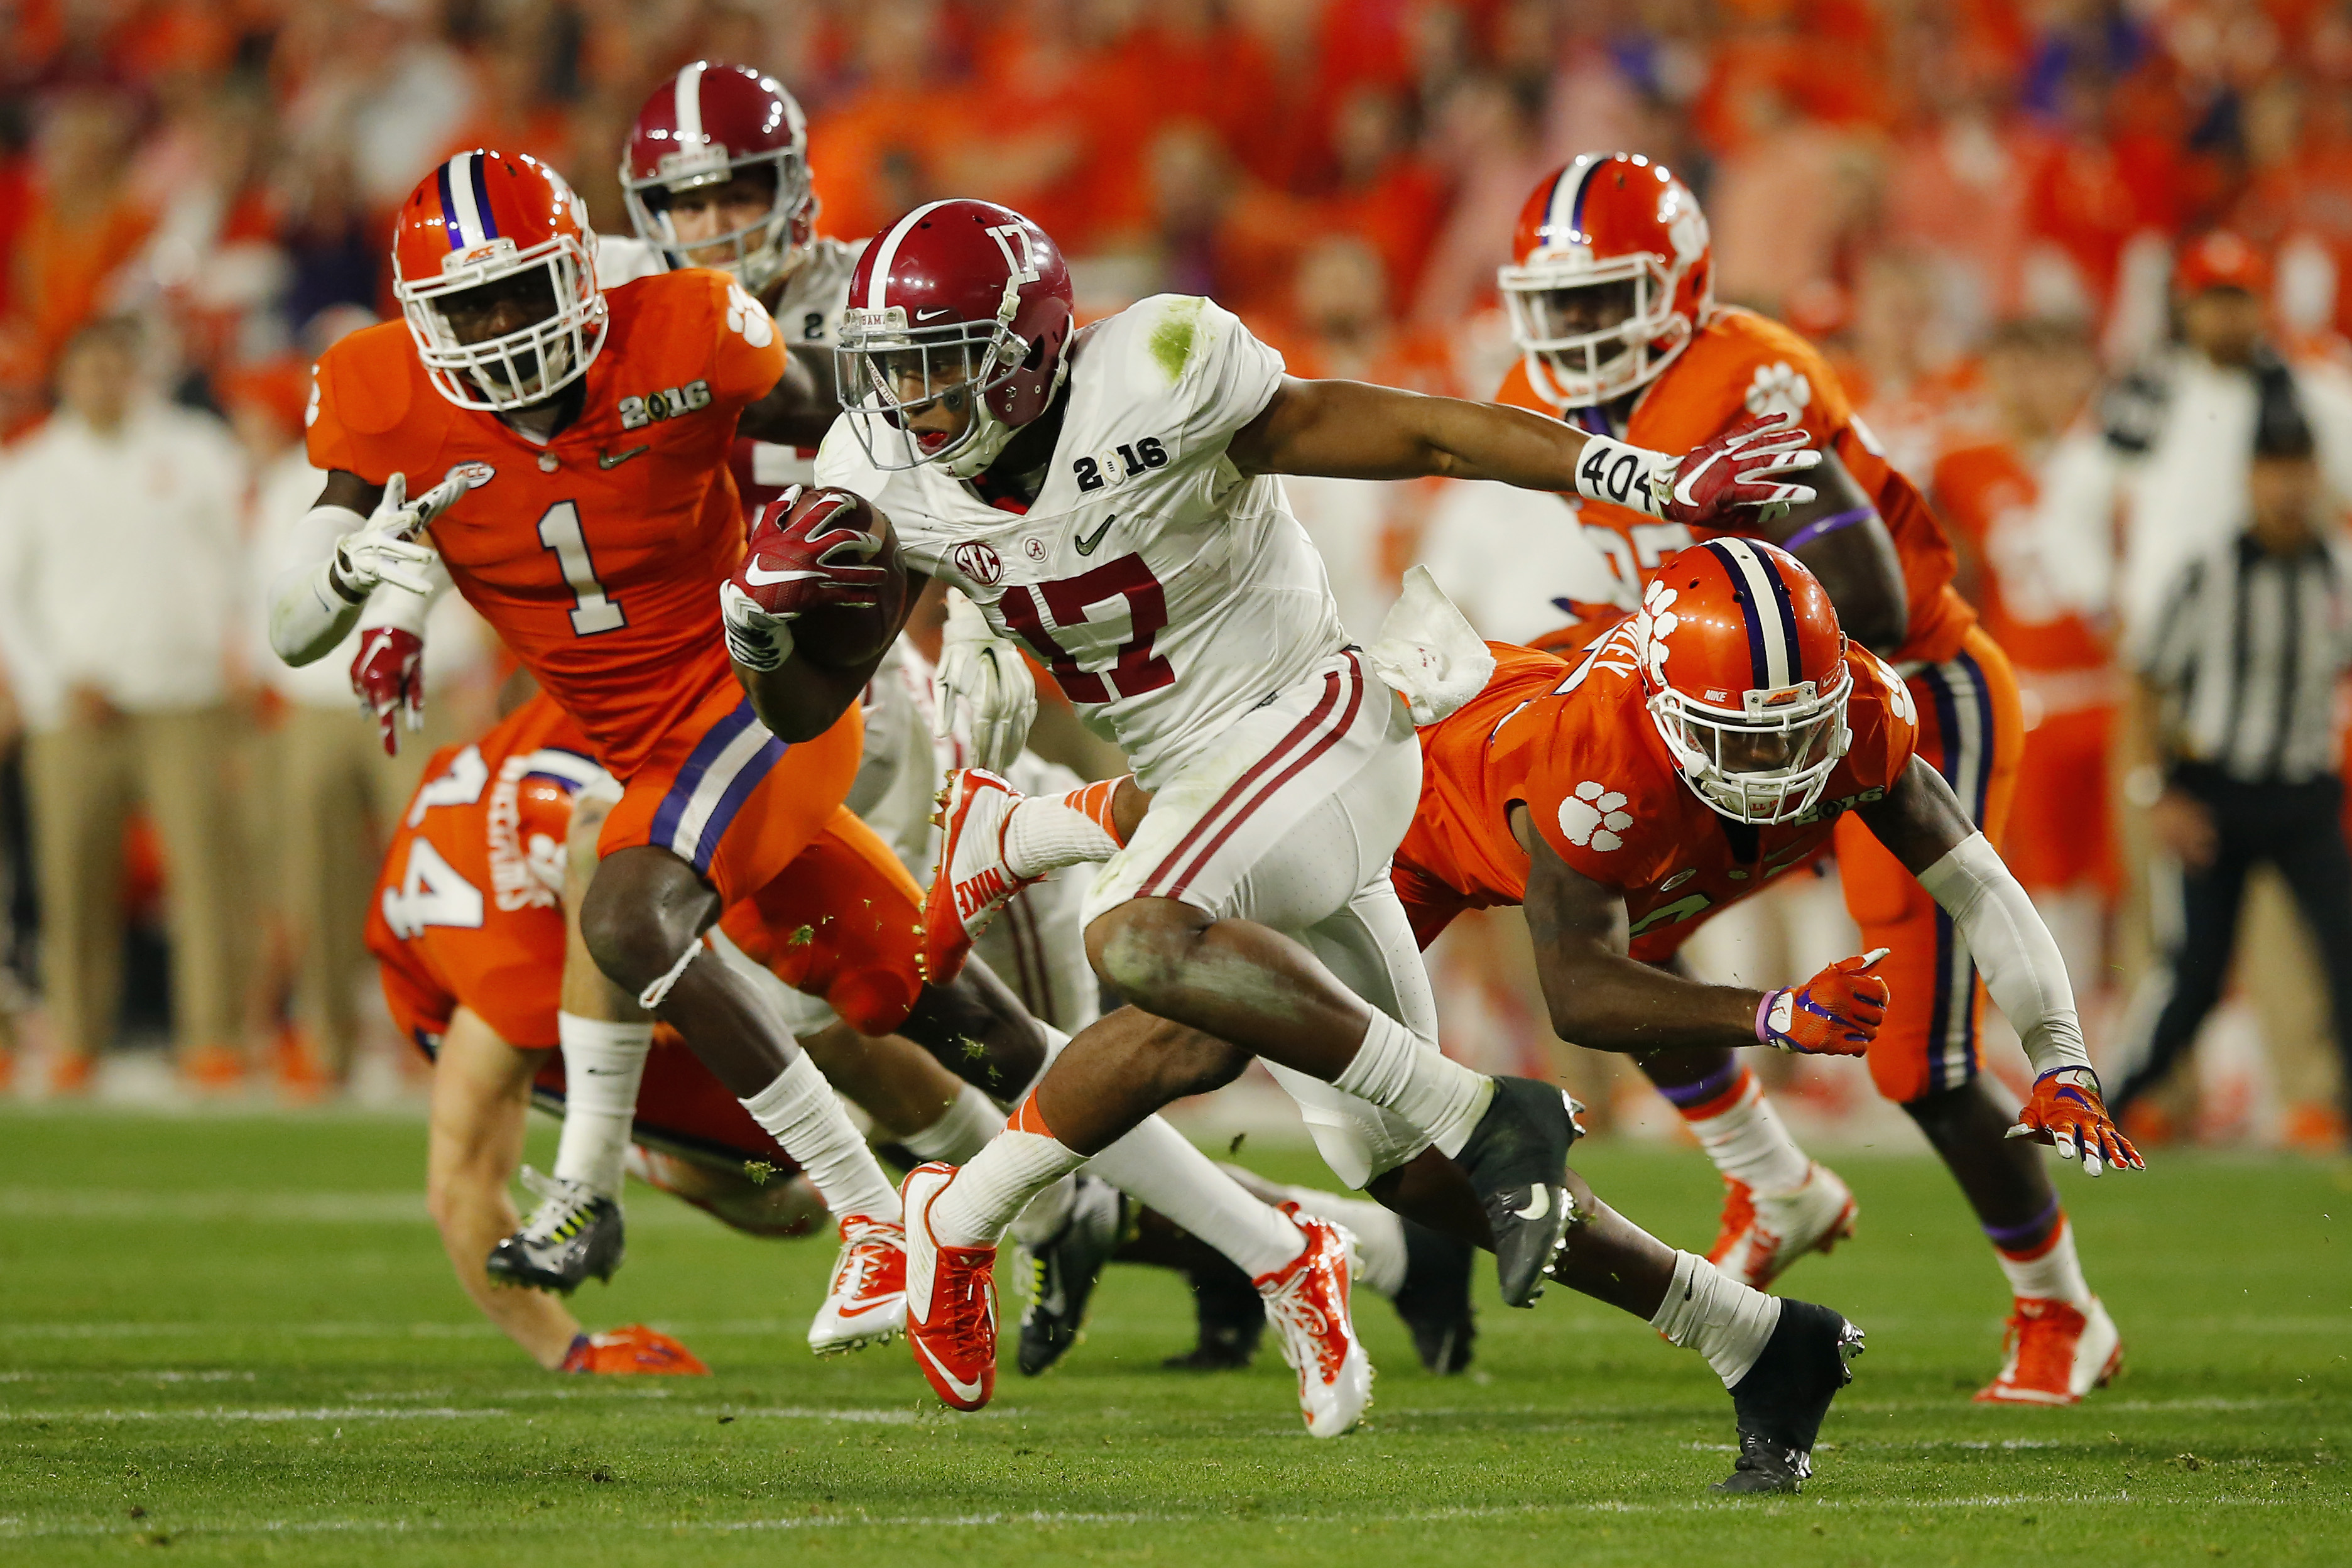 GLENDALE, AZ - JANUARY 11:  Kenyan Drake #17 of the Alabama Crimson Tide returns a punt for a 95 yard touchdown in the fourth quarter against the Clemson Tigers during the 2016 College Football Playoff National Championship Game at University of Phoenix Stadium on January 11, 2016 in Glendale, Arizona.  (Photo by Kevin C. Cox/Getty Images)